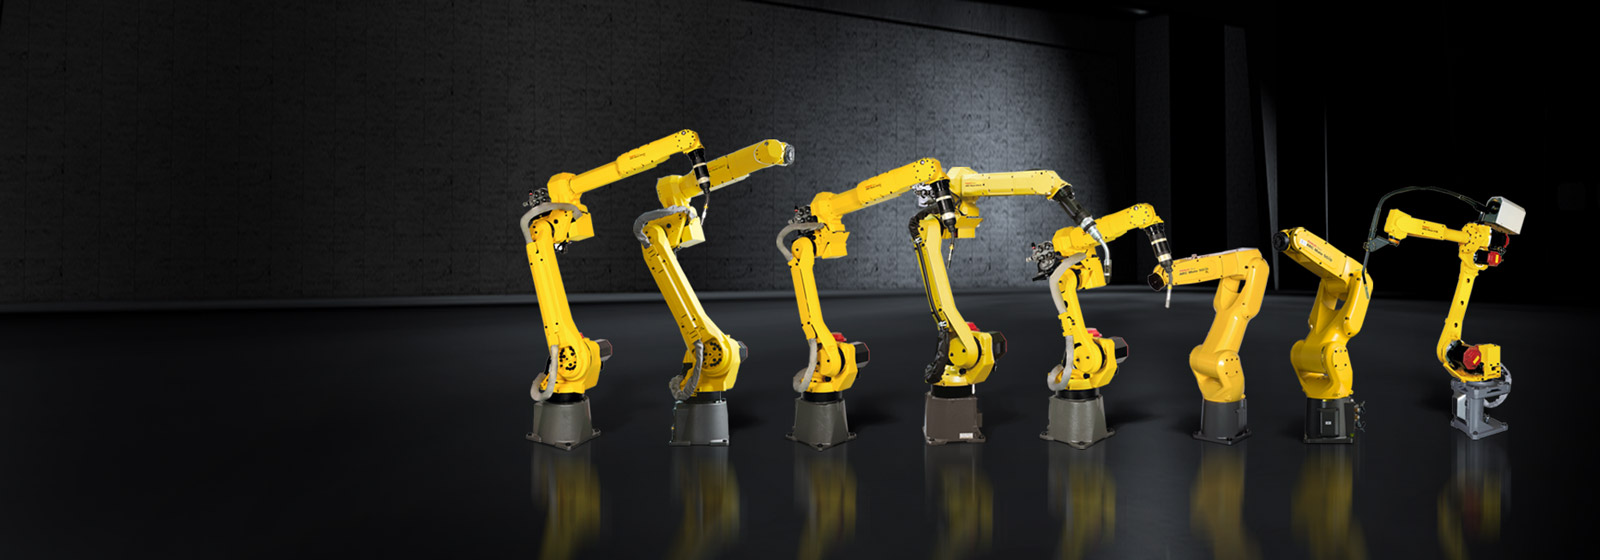 Fanuc Arc Welding Robots Components Together With Brazing And Variety Of Gas